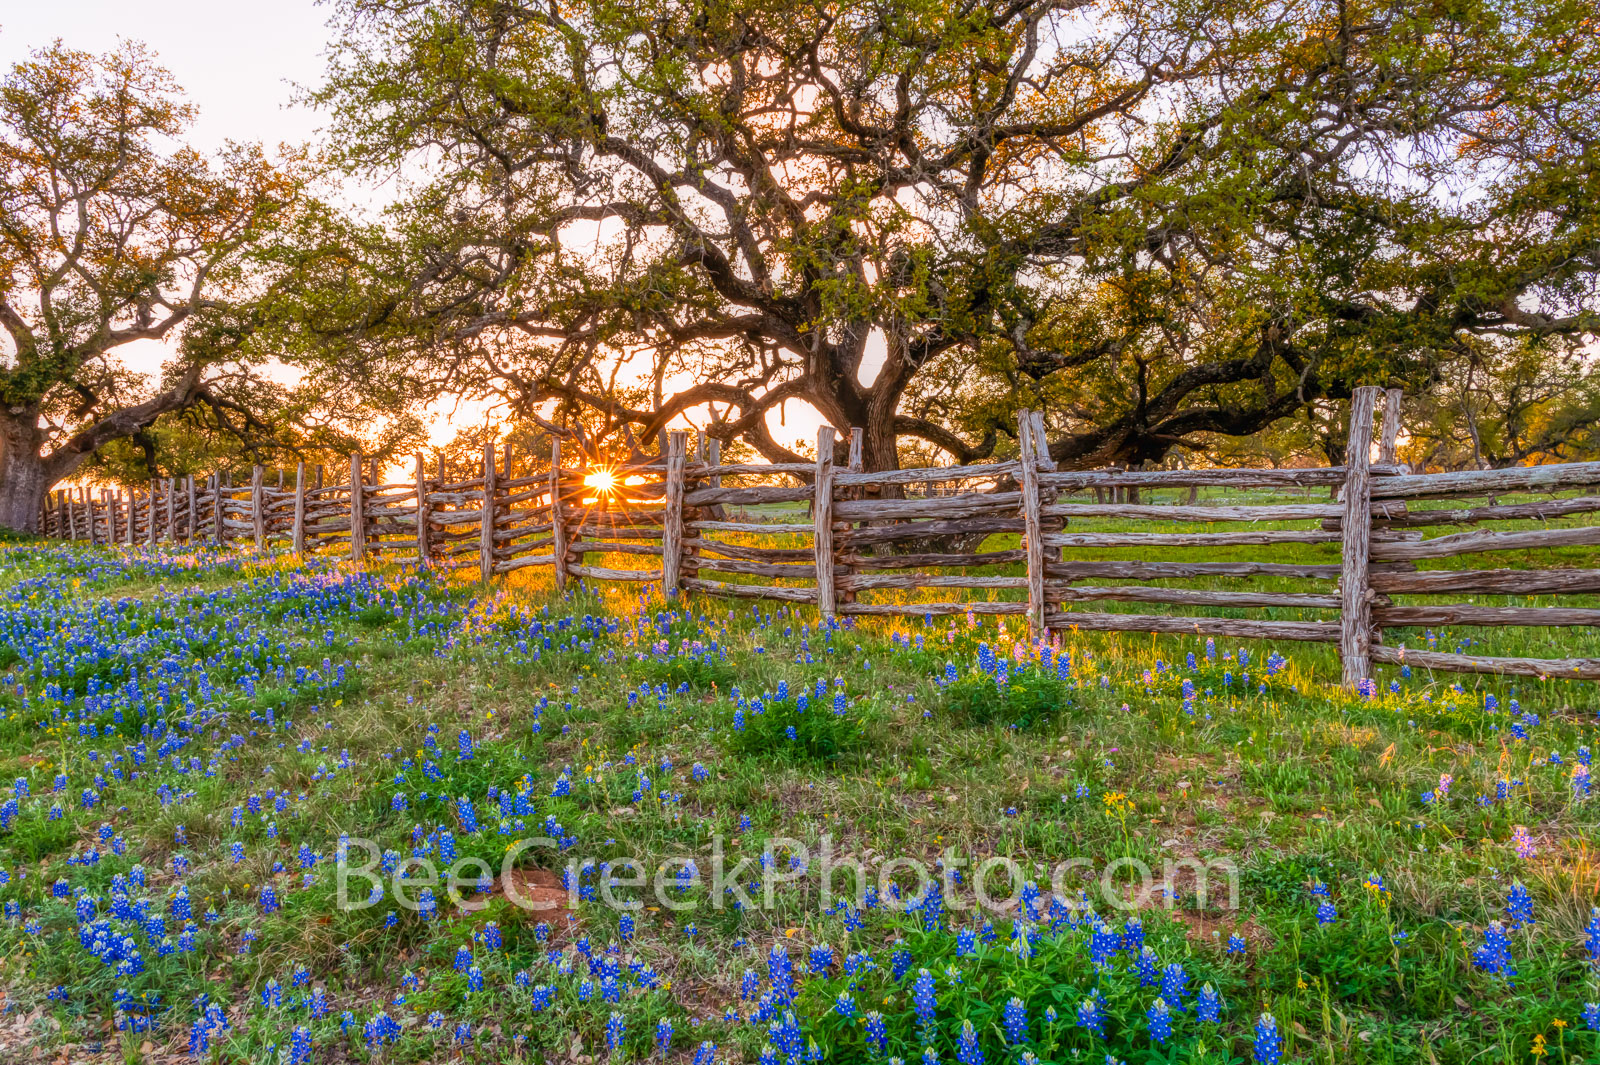 texas bluebonnets, texas wildflowers, sunset, sun rays, cedar fence, bluebonnents, texas hill country,  wildflowers,  oak tree, hill country, bluebonnets, , photo